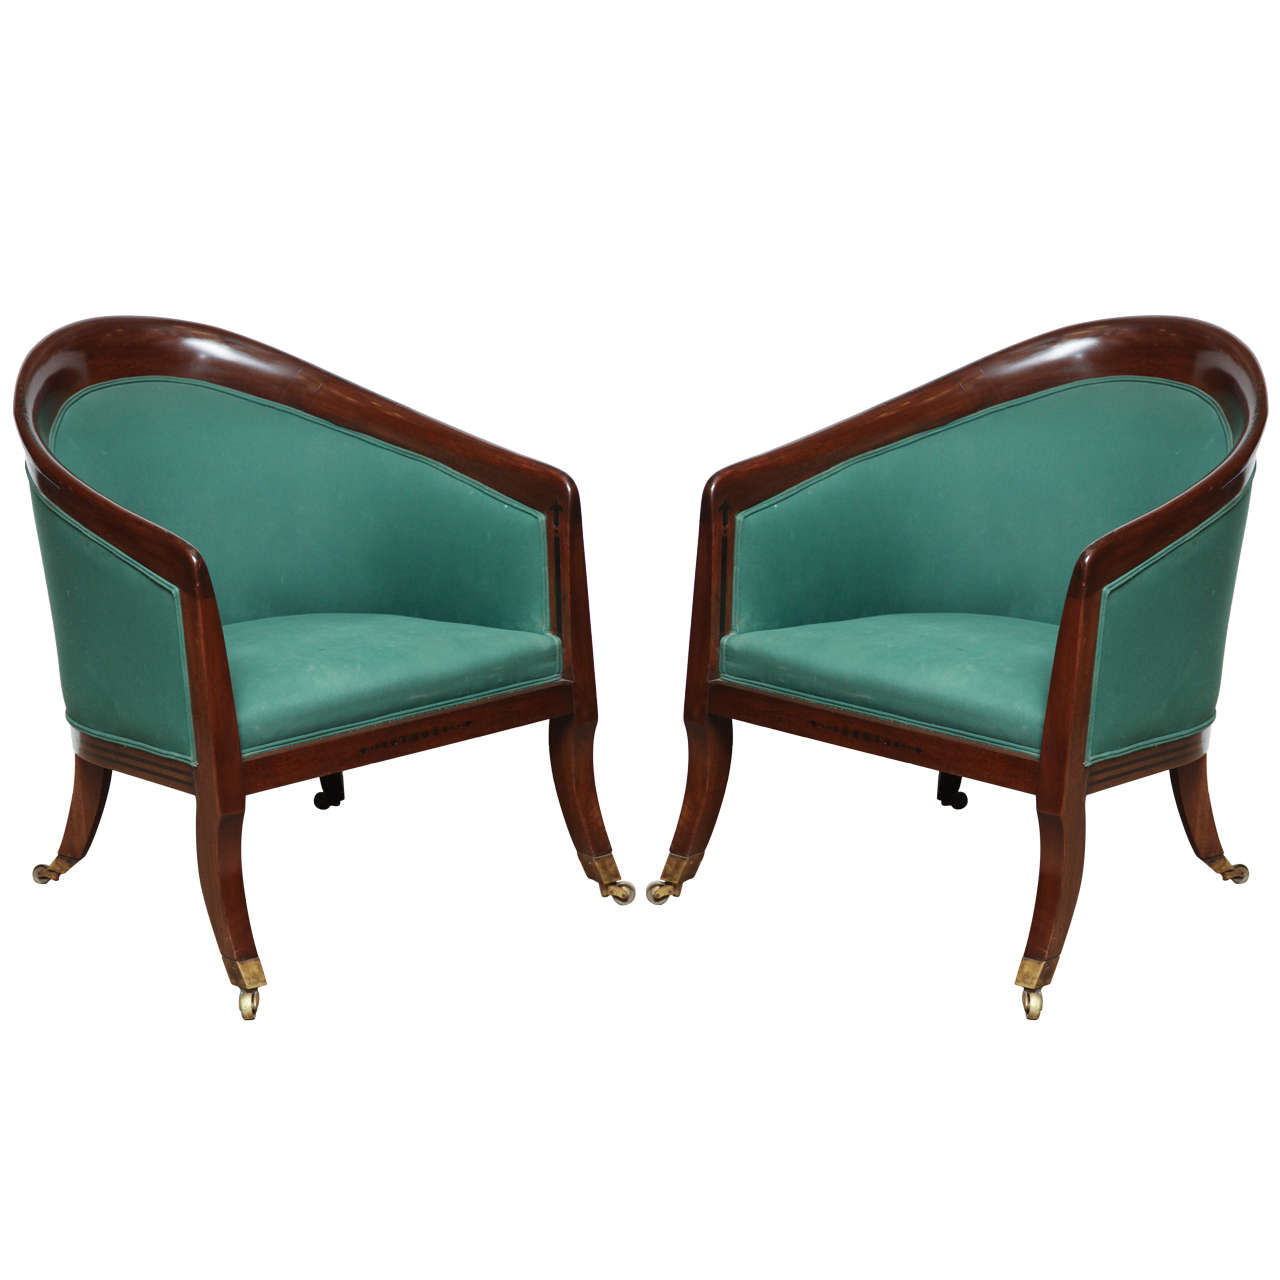 Superb Pair of Early 19th Century English Armchairs For Sale